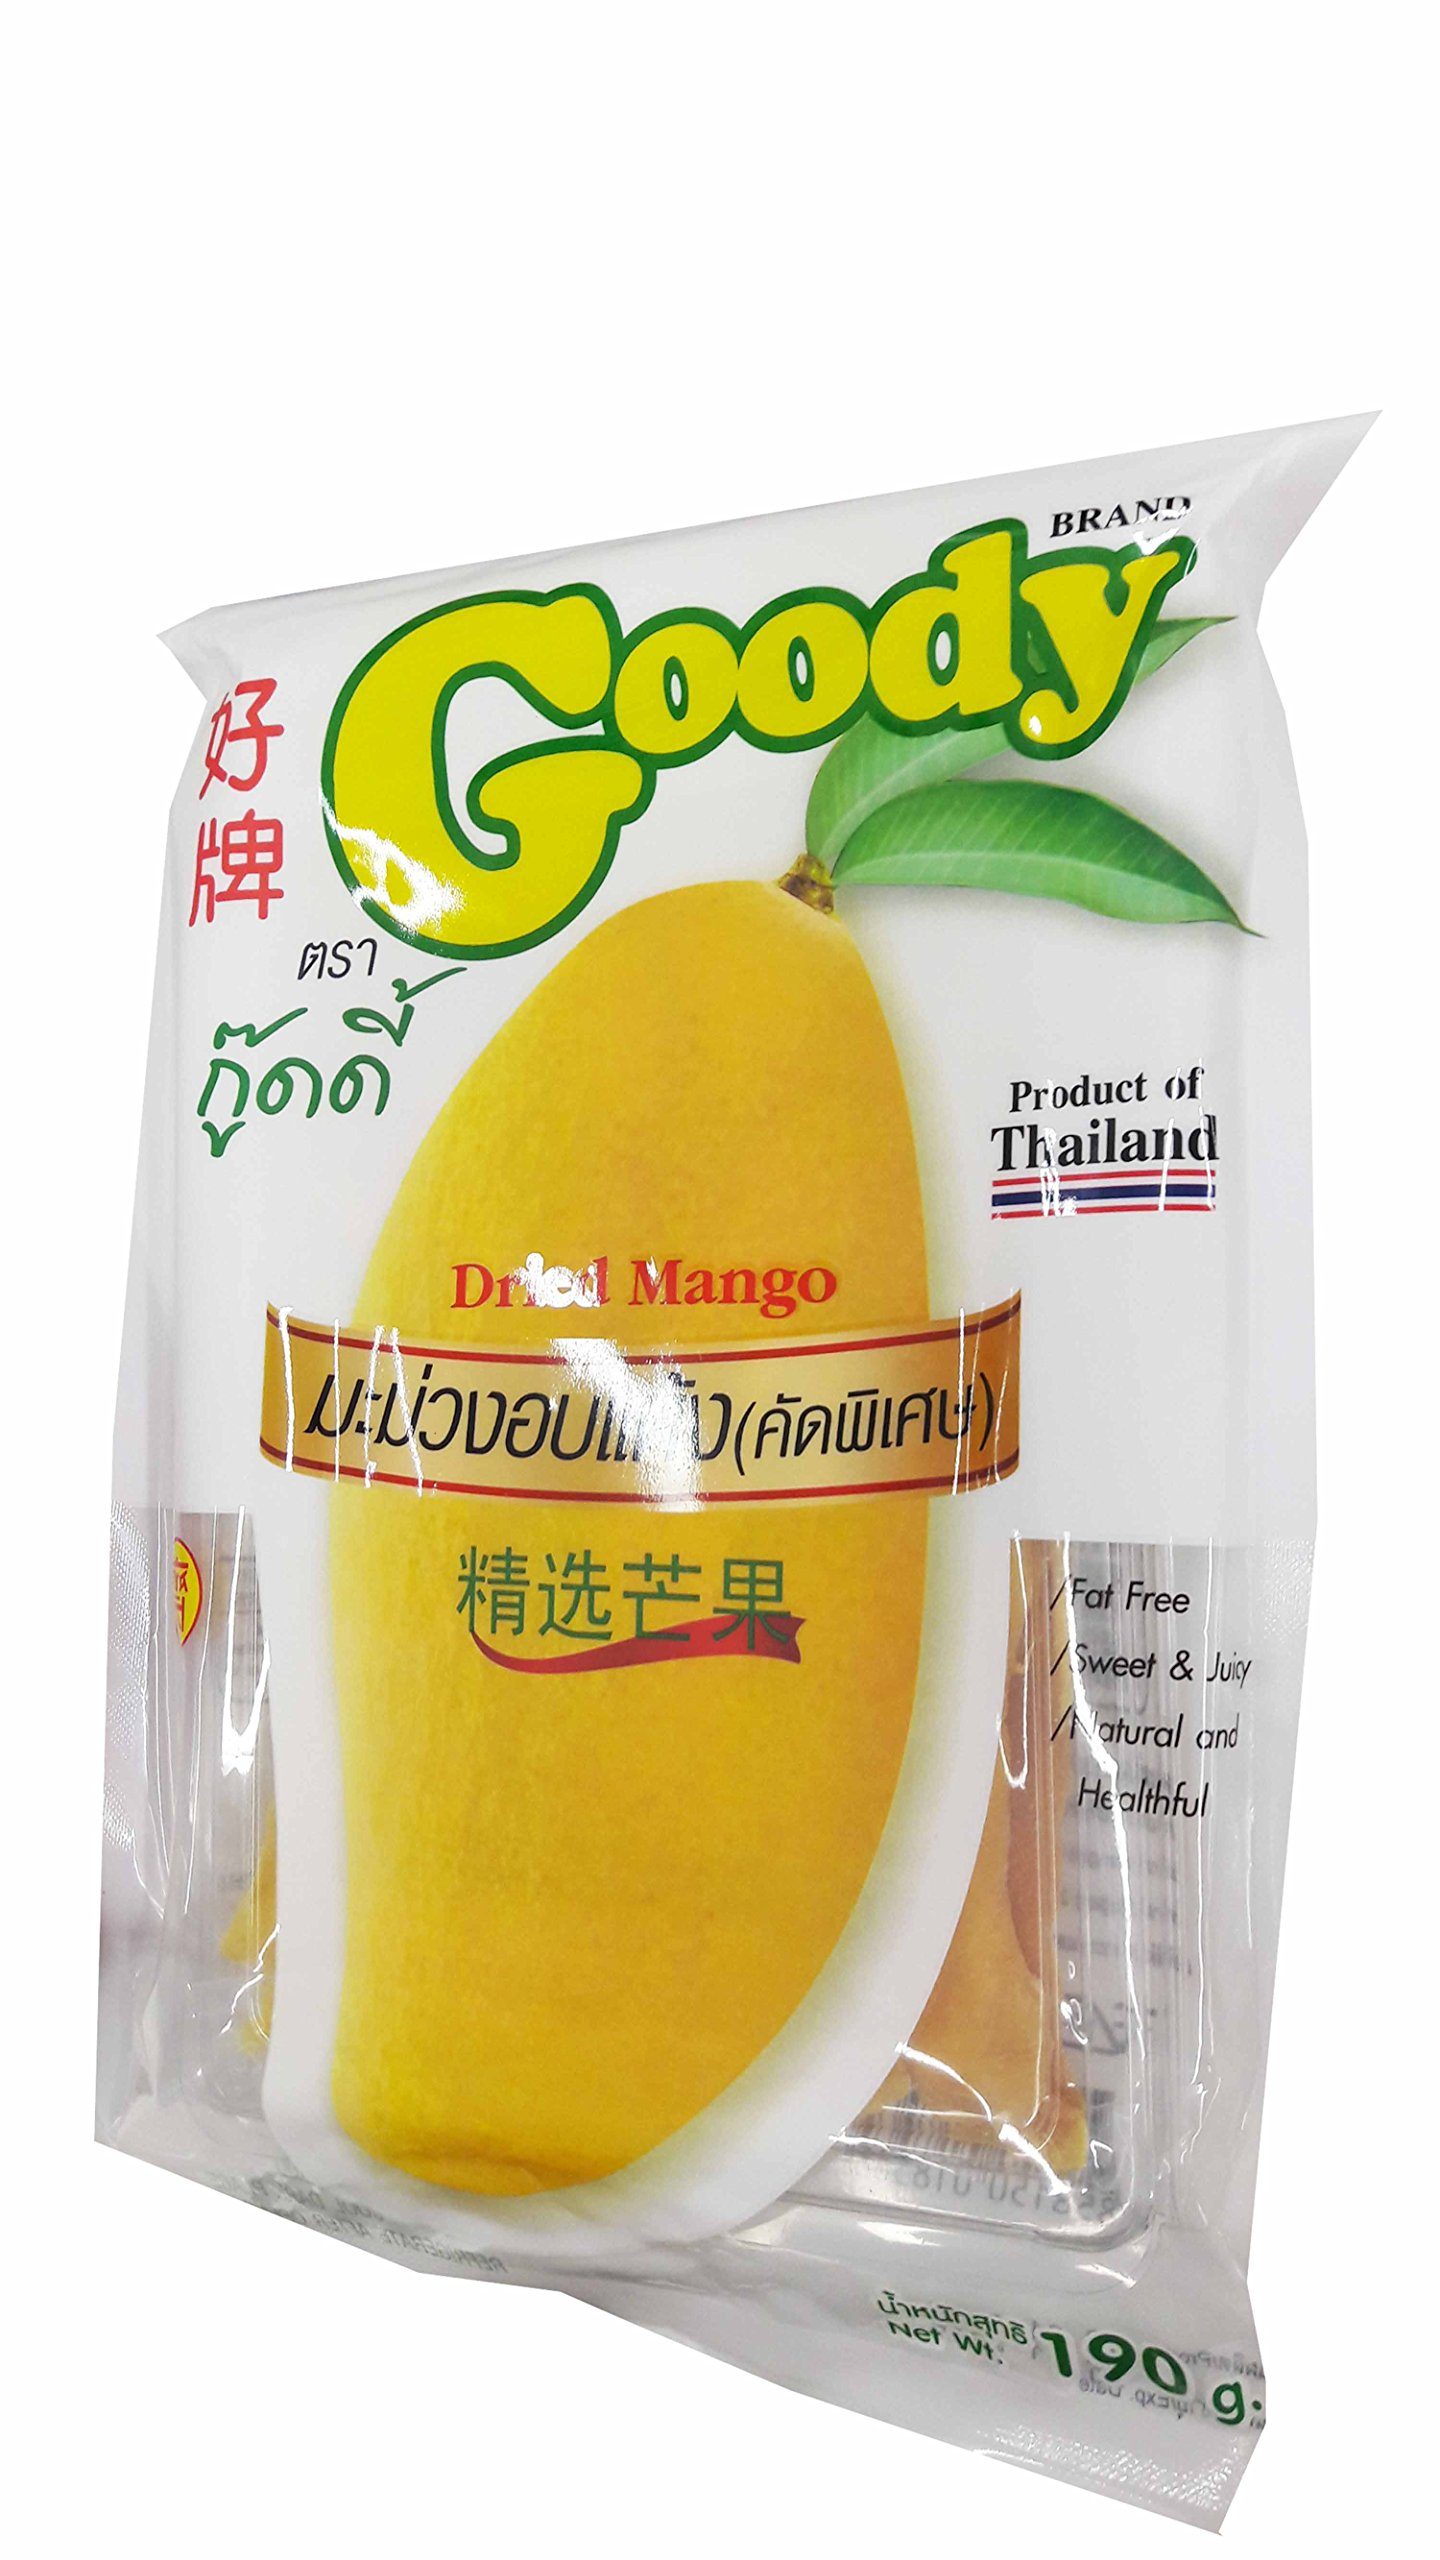 2 Packs of Dried Mango, Made From Real Mango, Delicious Fruit Snack From Goody Brand. Fat free, Sweet & Juicy, Natural and Healthful. (190 g/pack).